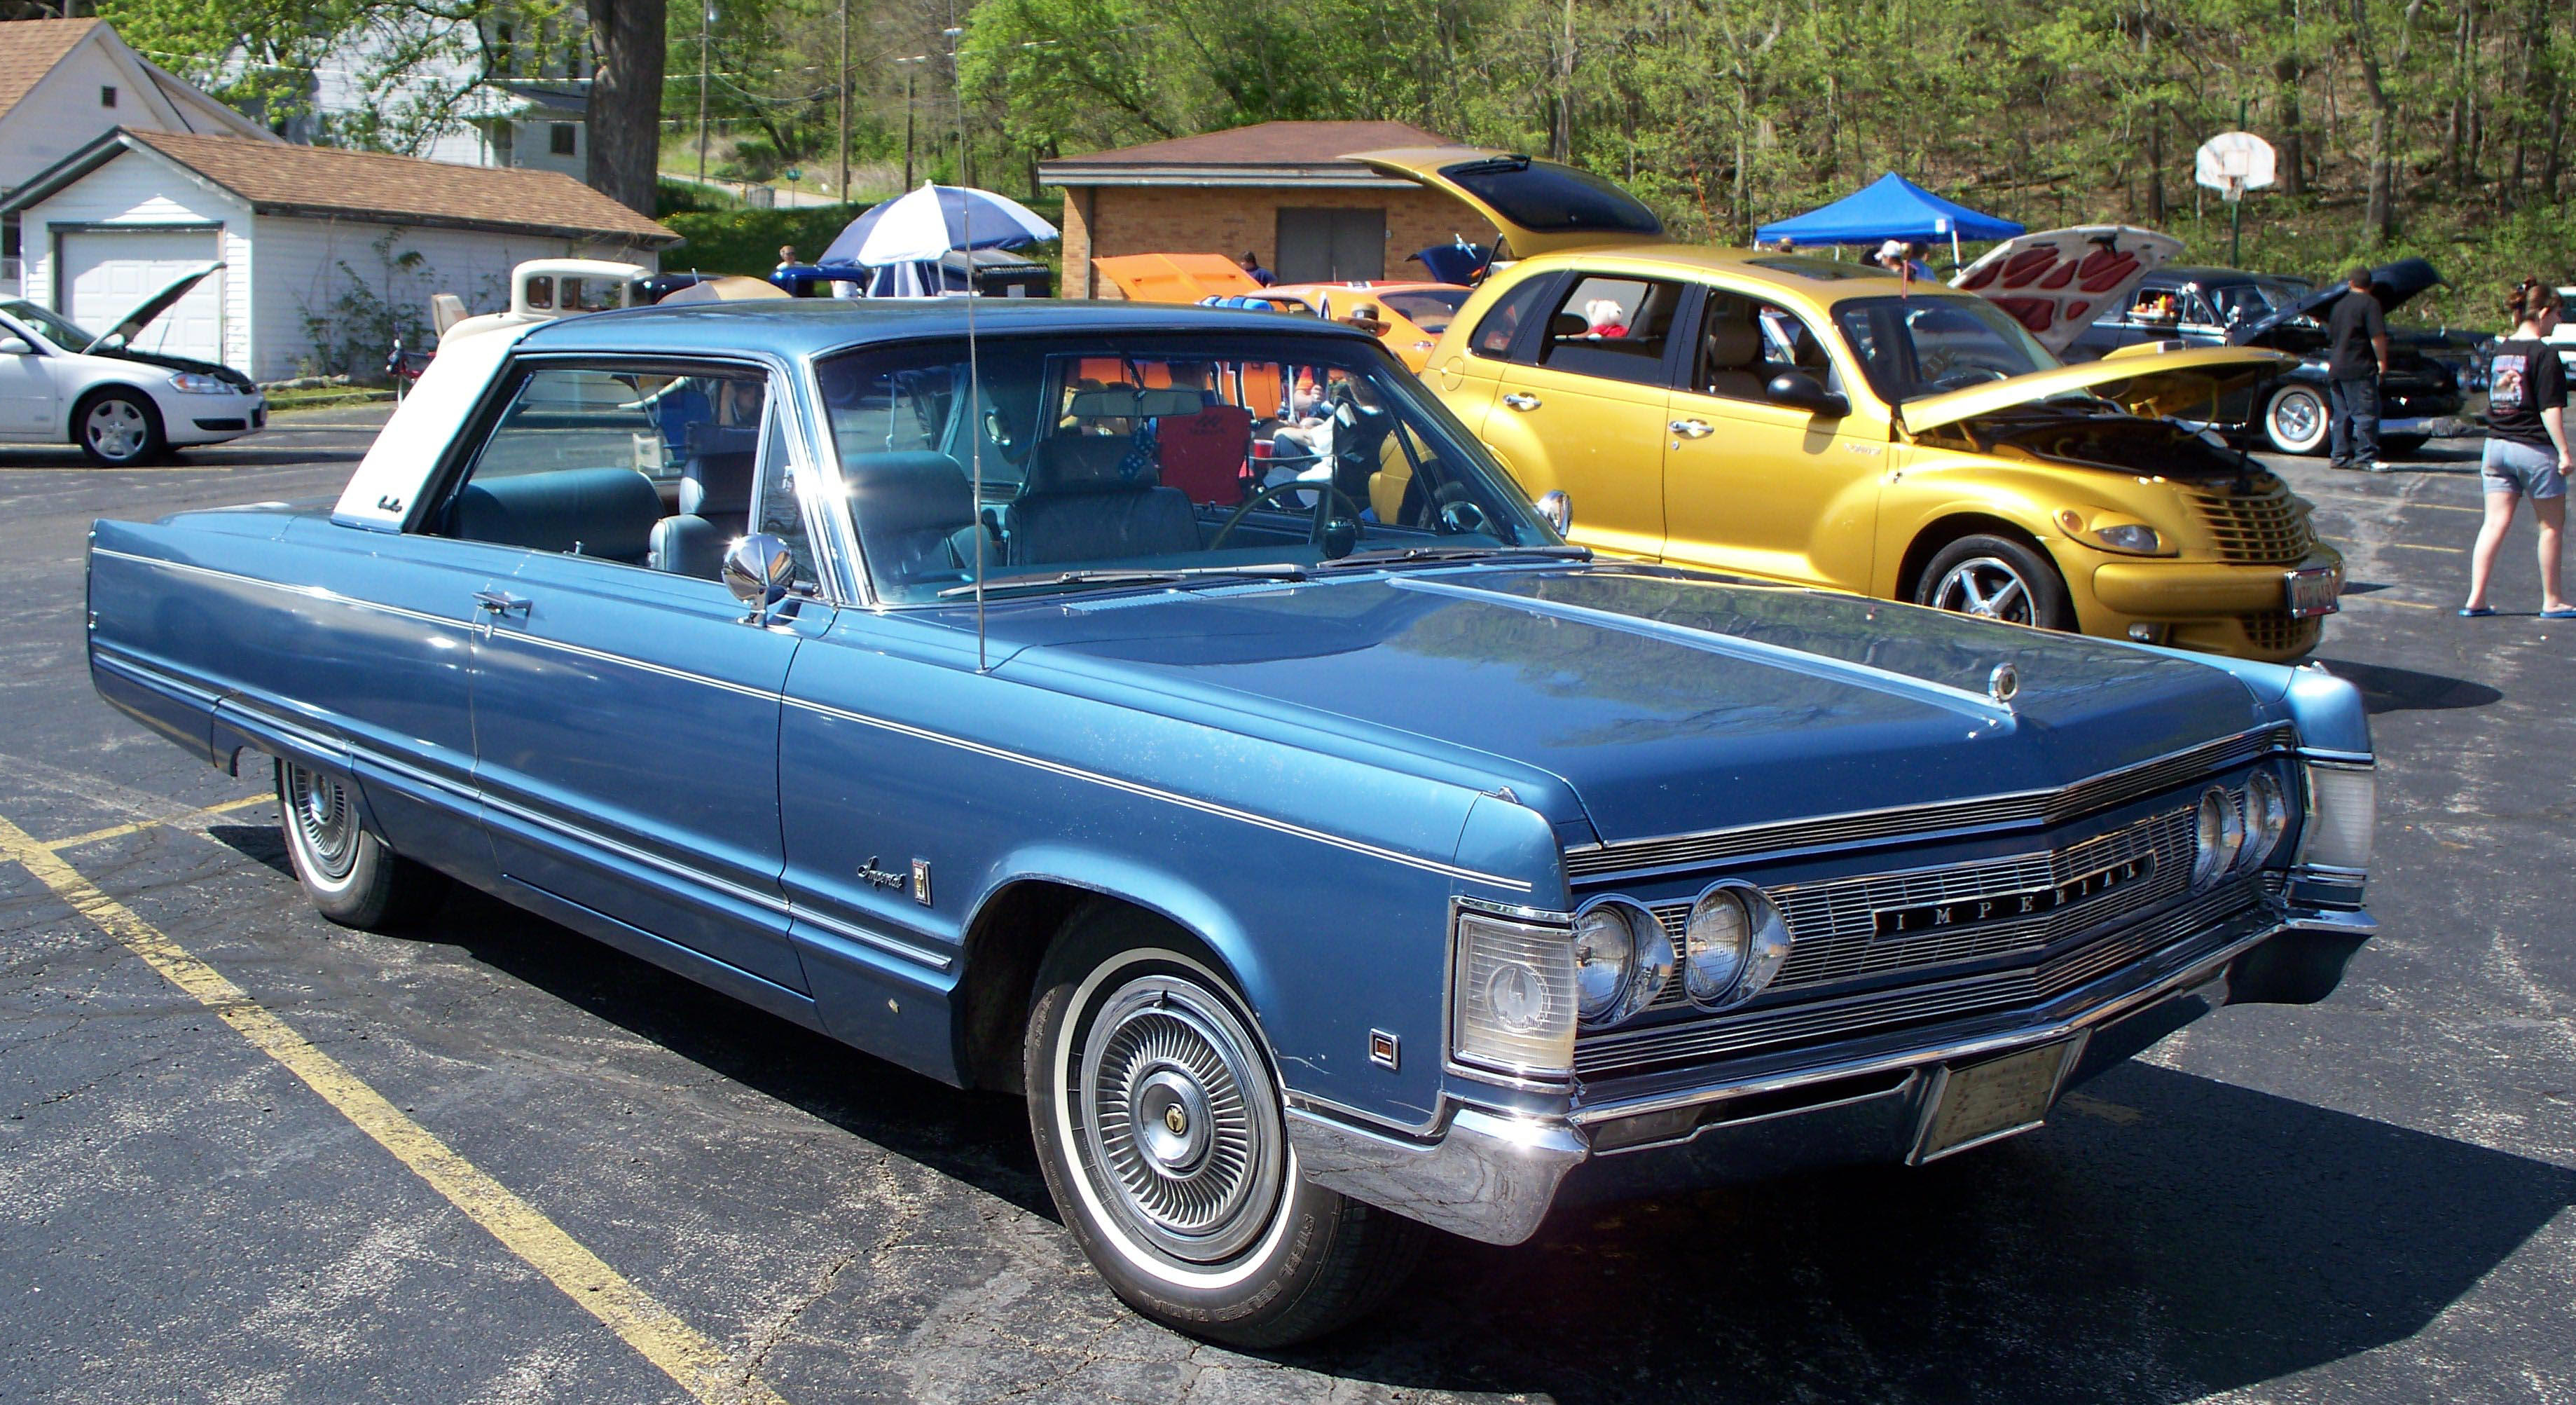 Arthur Schrader's 1967 Chrysler Imperial Crown Coupe